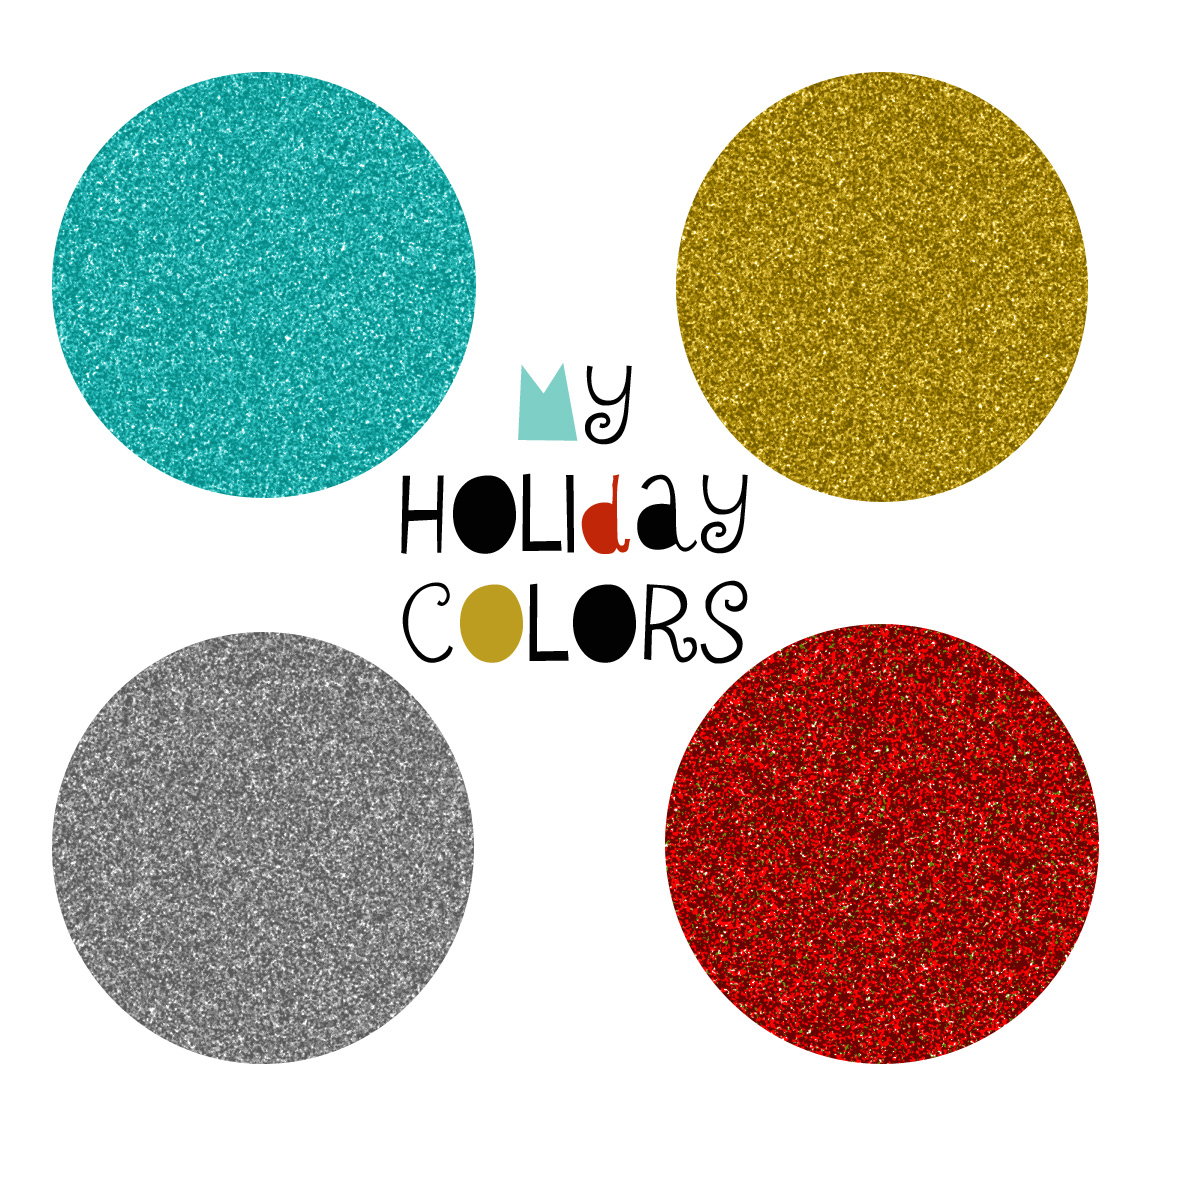 Colorful Holidays Creating Holiday Color Schemes With